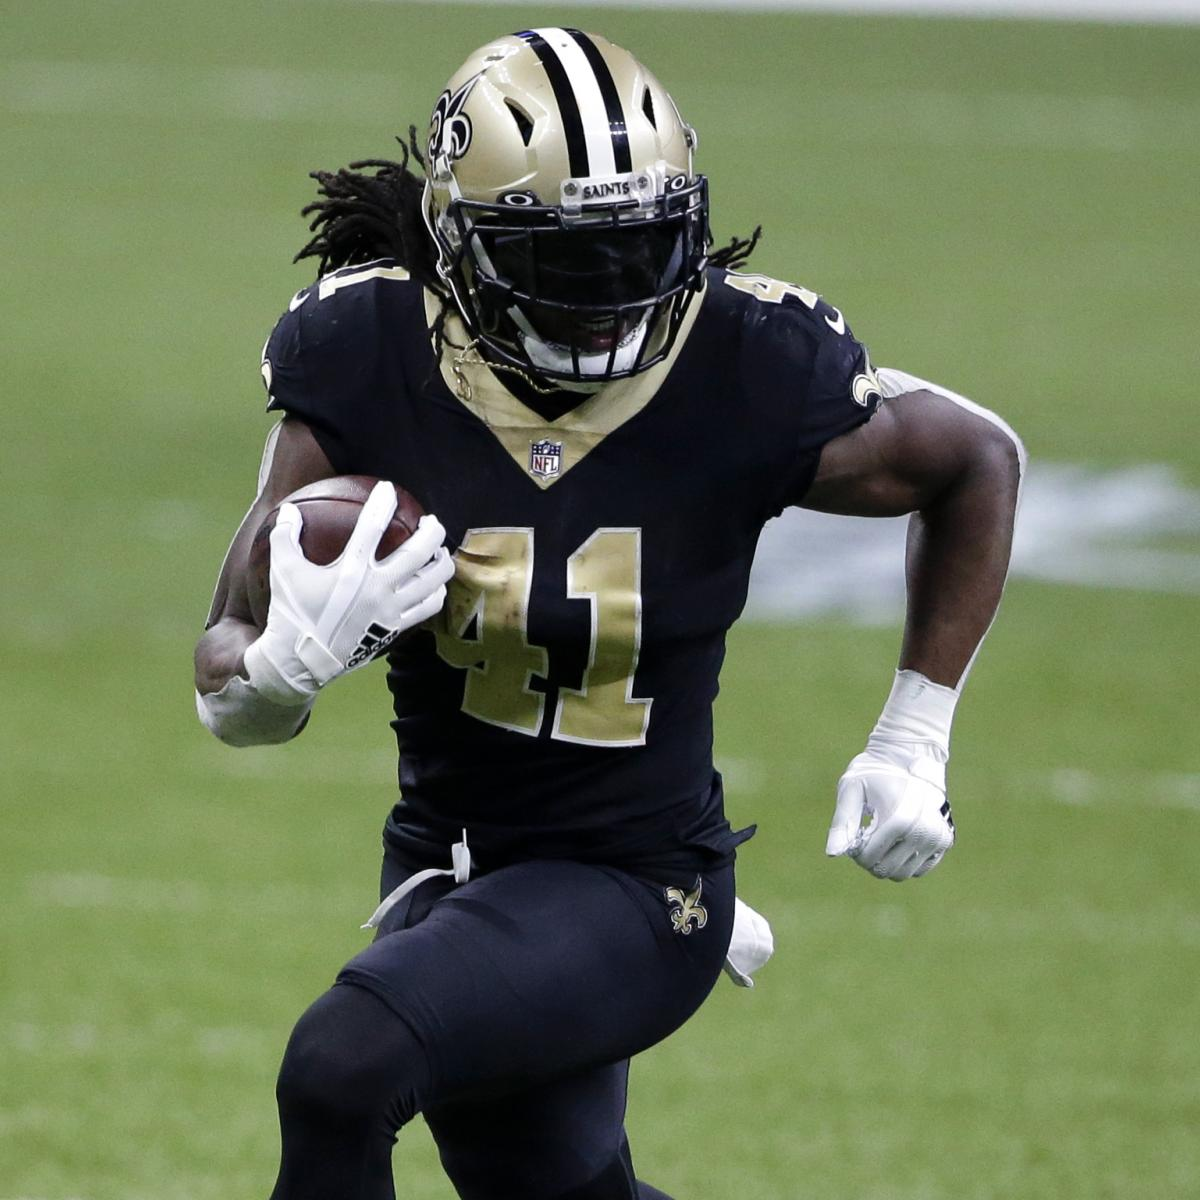 Fantasy Football Rankings 2021: Early List of Top Players and Sleepers to Target